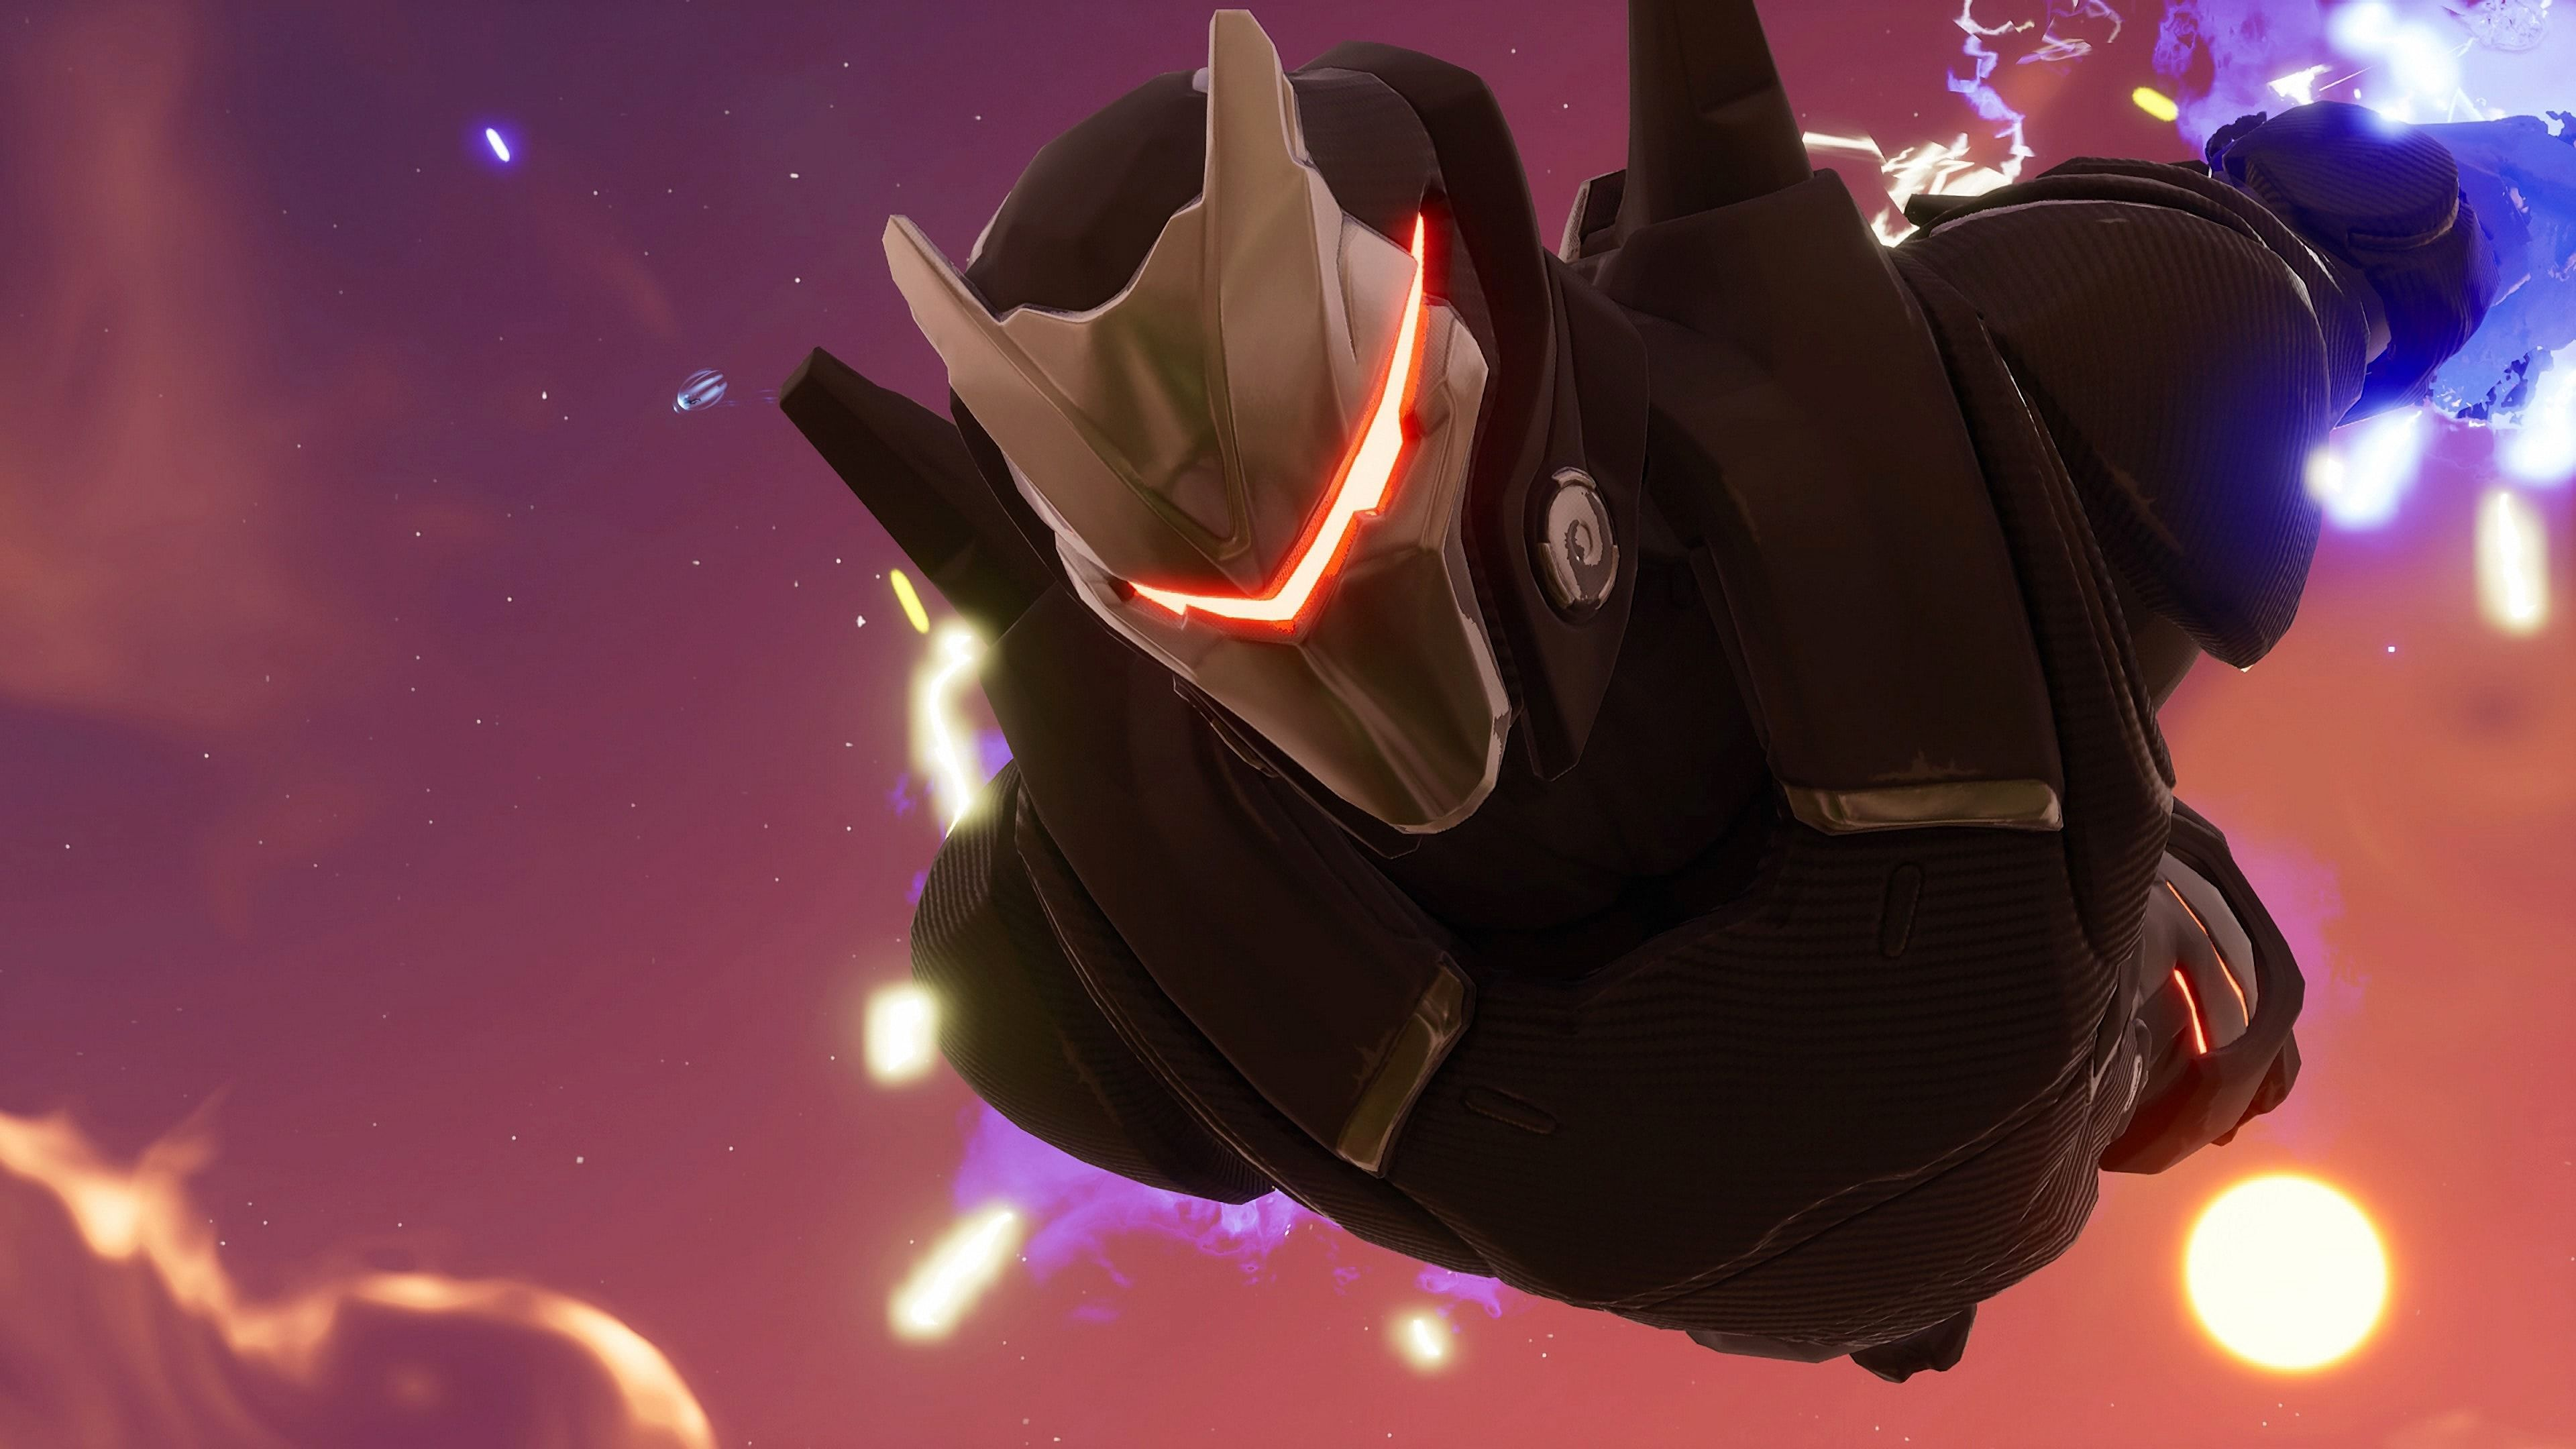 Fortnite Omega Wallpapers Top Free Fortnite Omega